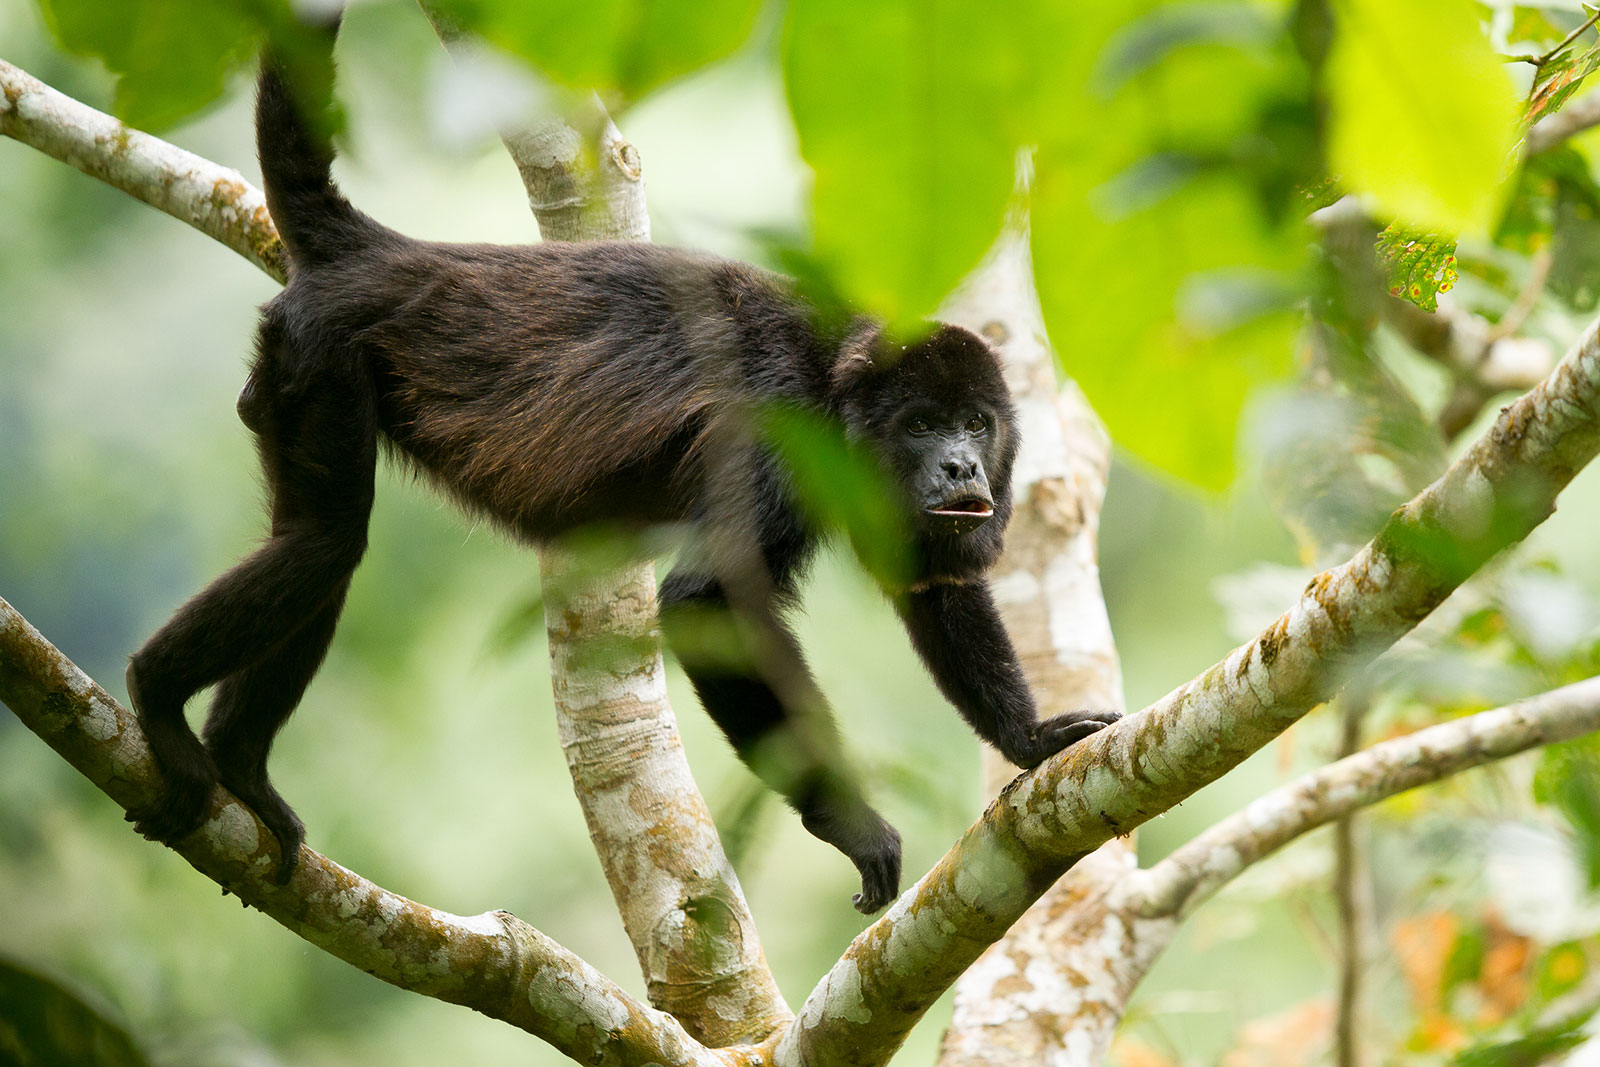 A dark brown monkey climbing a white tree